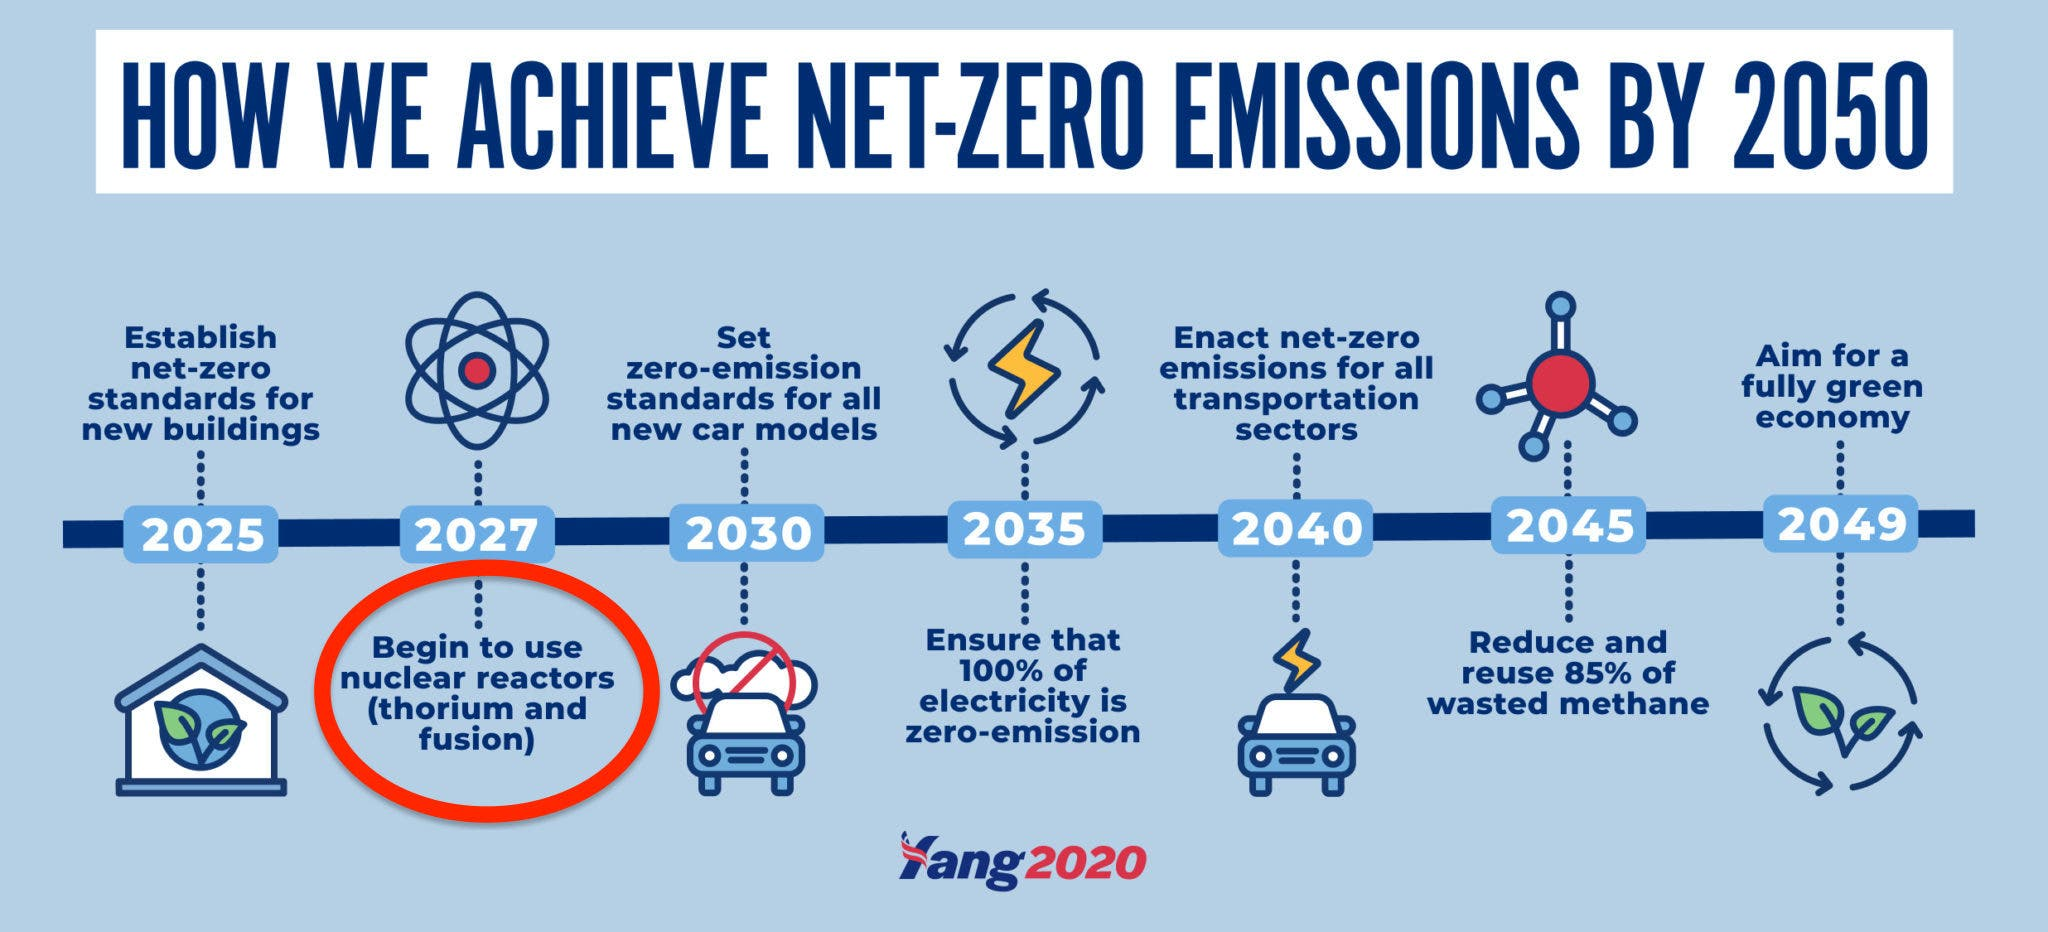 Andrew Yang campaign's roadmap to zero emissions by 2050